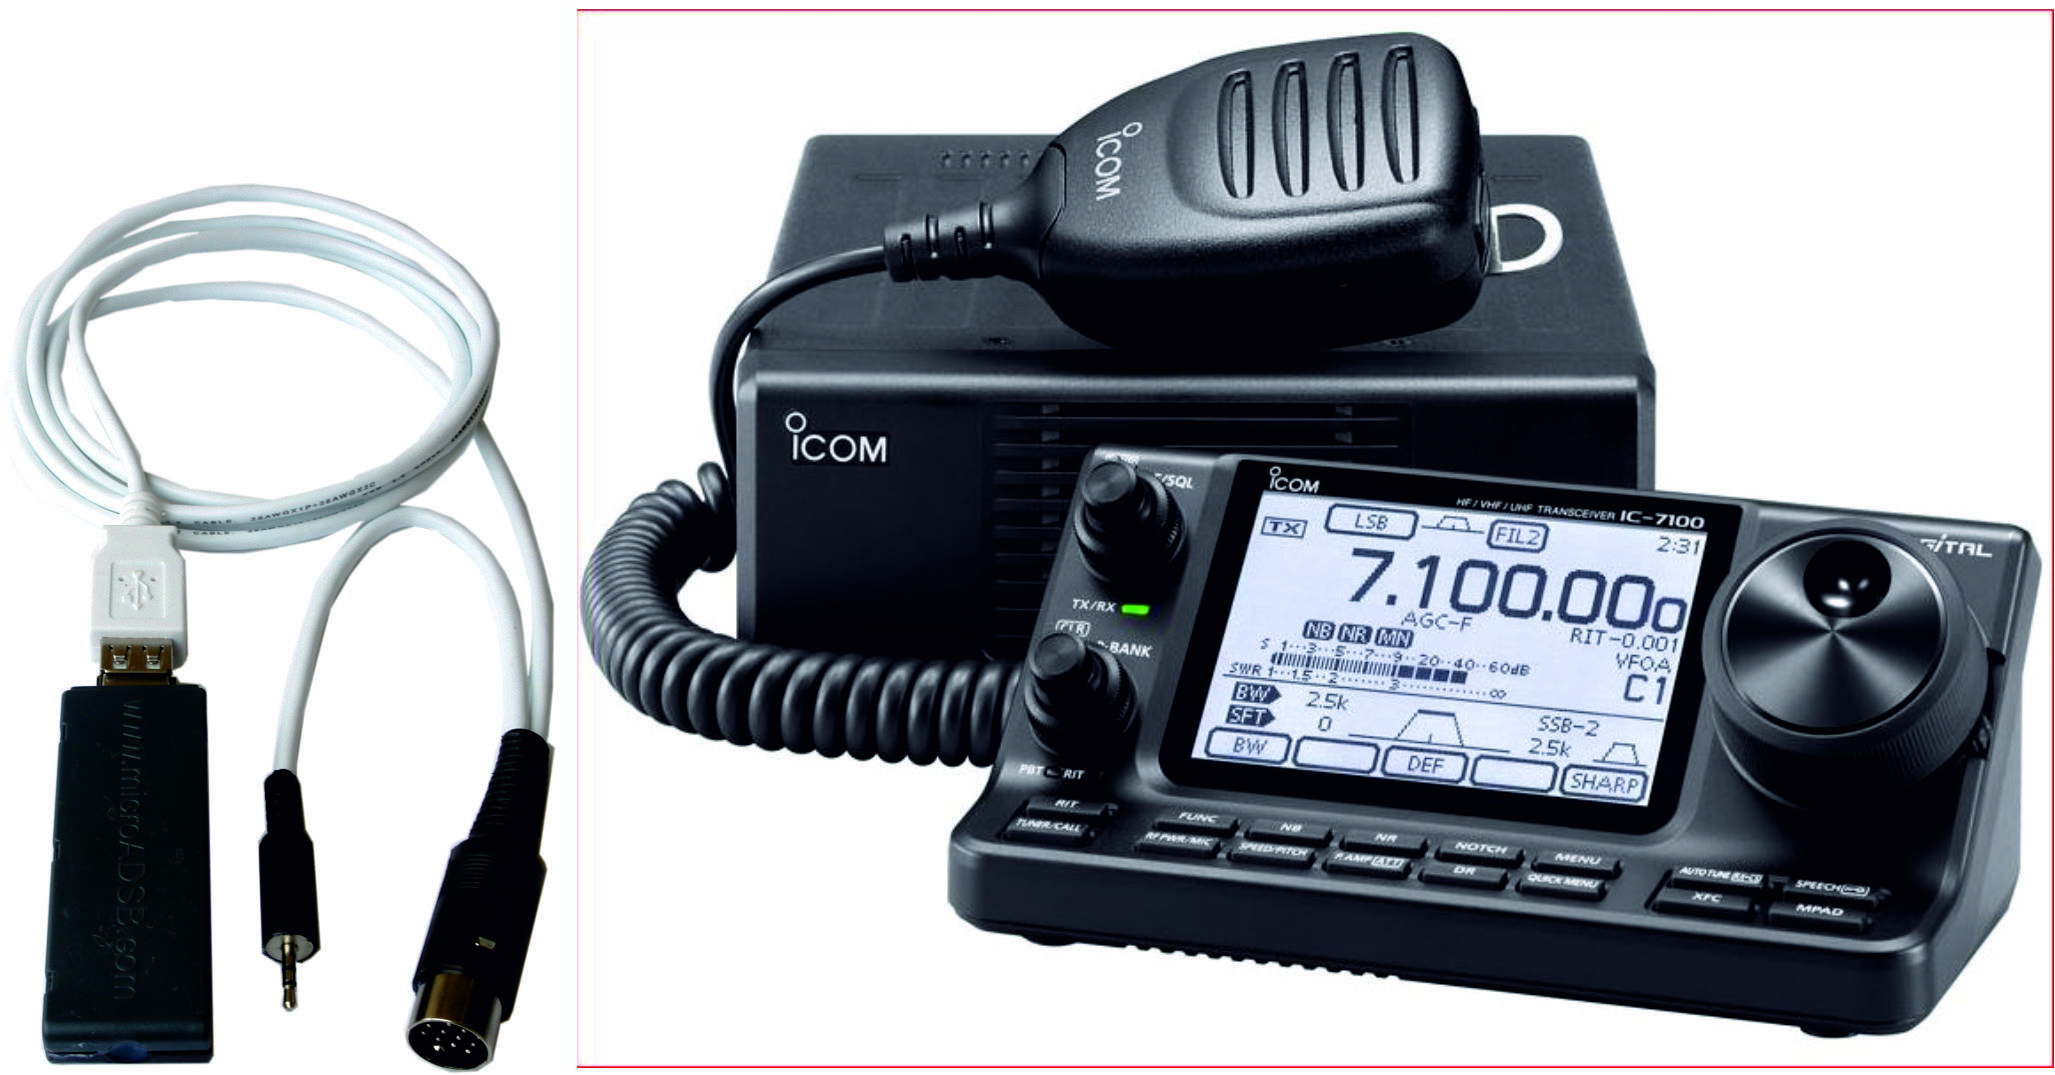 NEW PRODUCT!!!! GPS7100 GPS receiver module for ICOM IC-7100